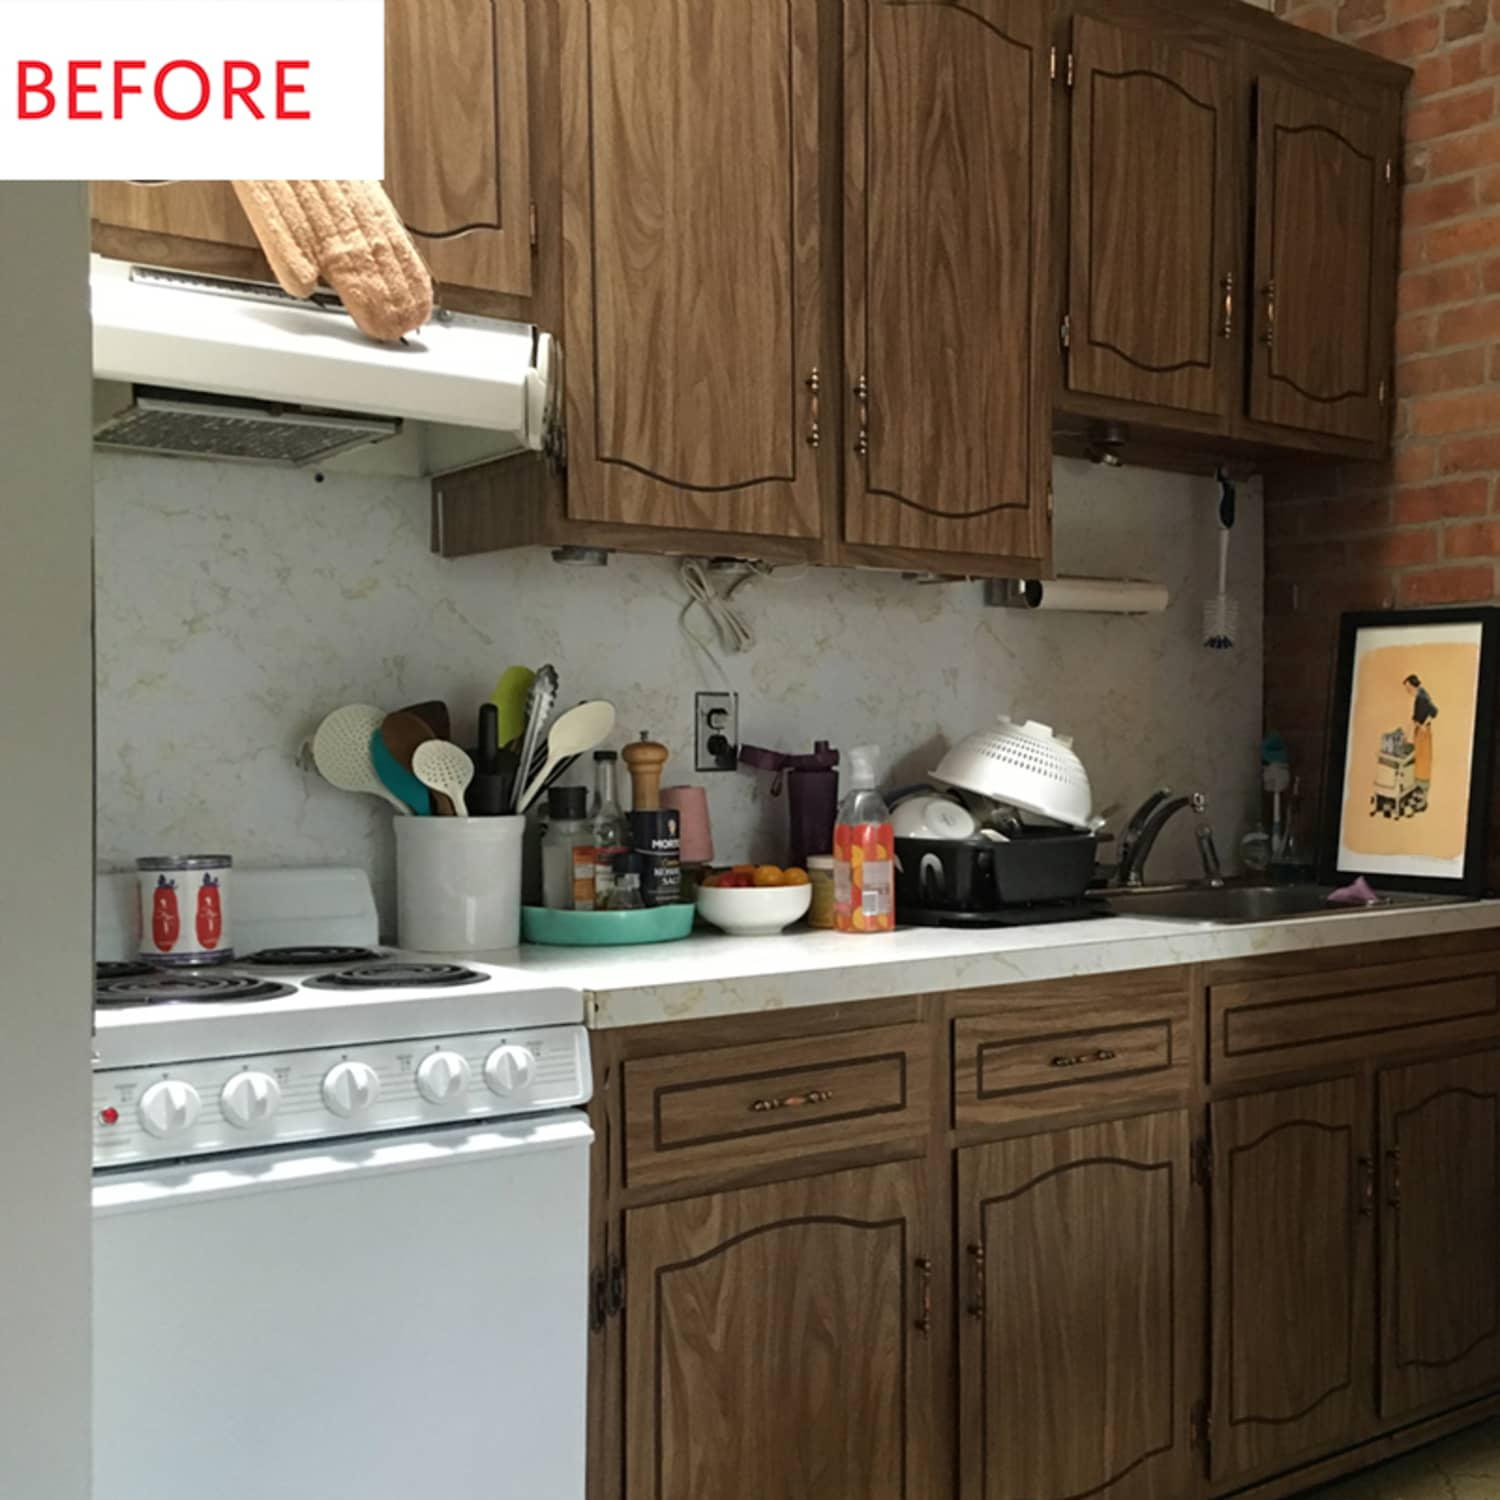 300 Later This Rental Kitchen Is No Longer Recognizable